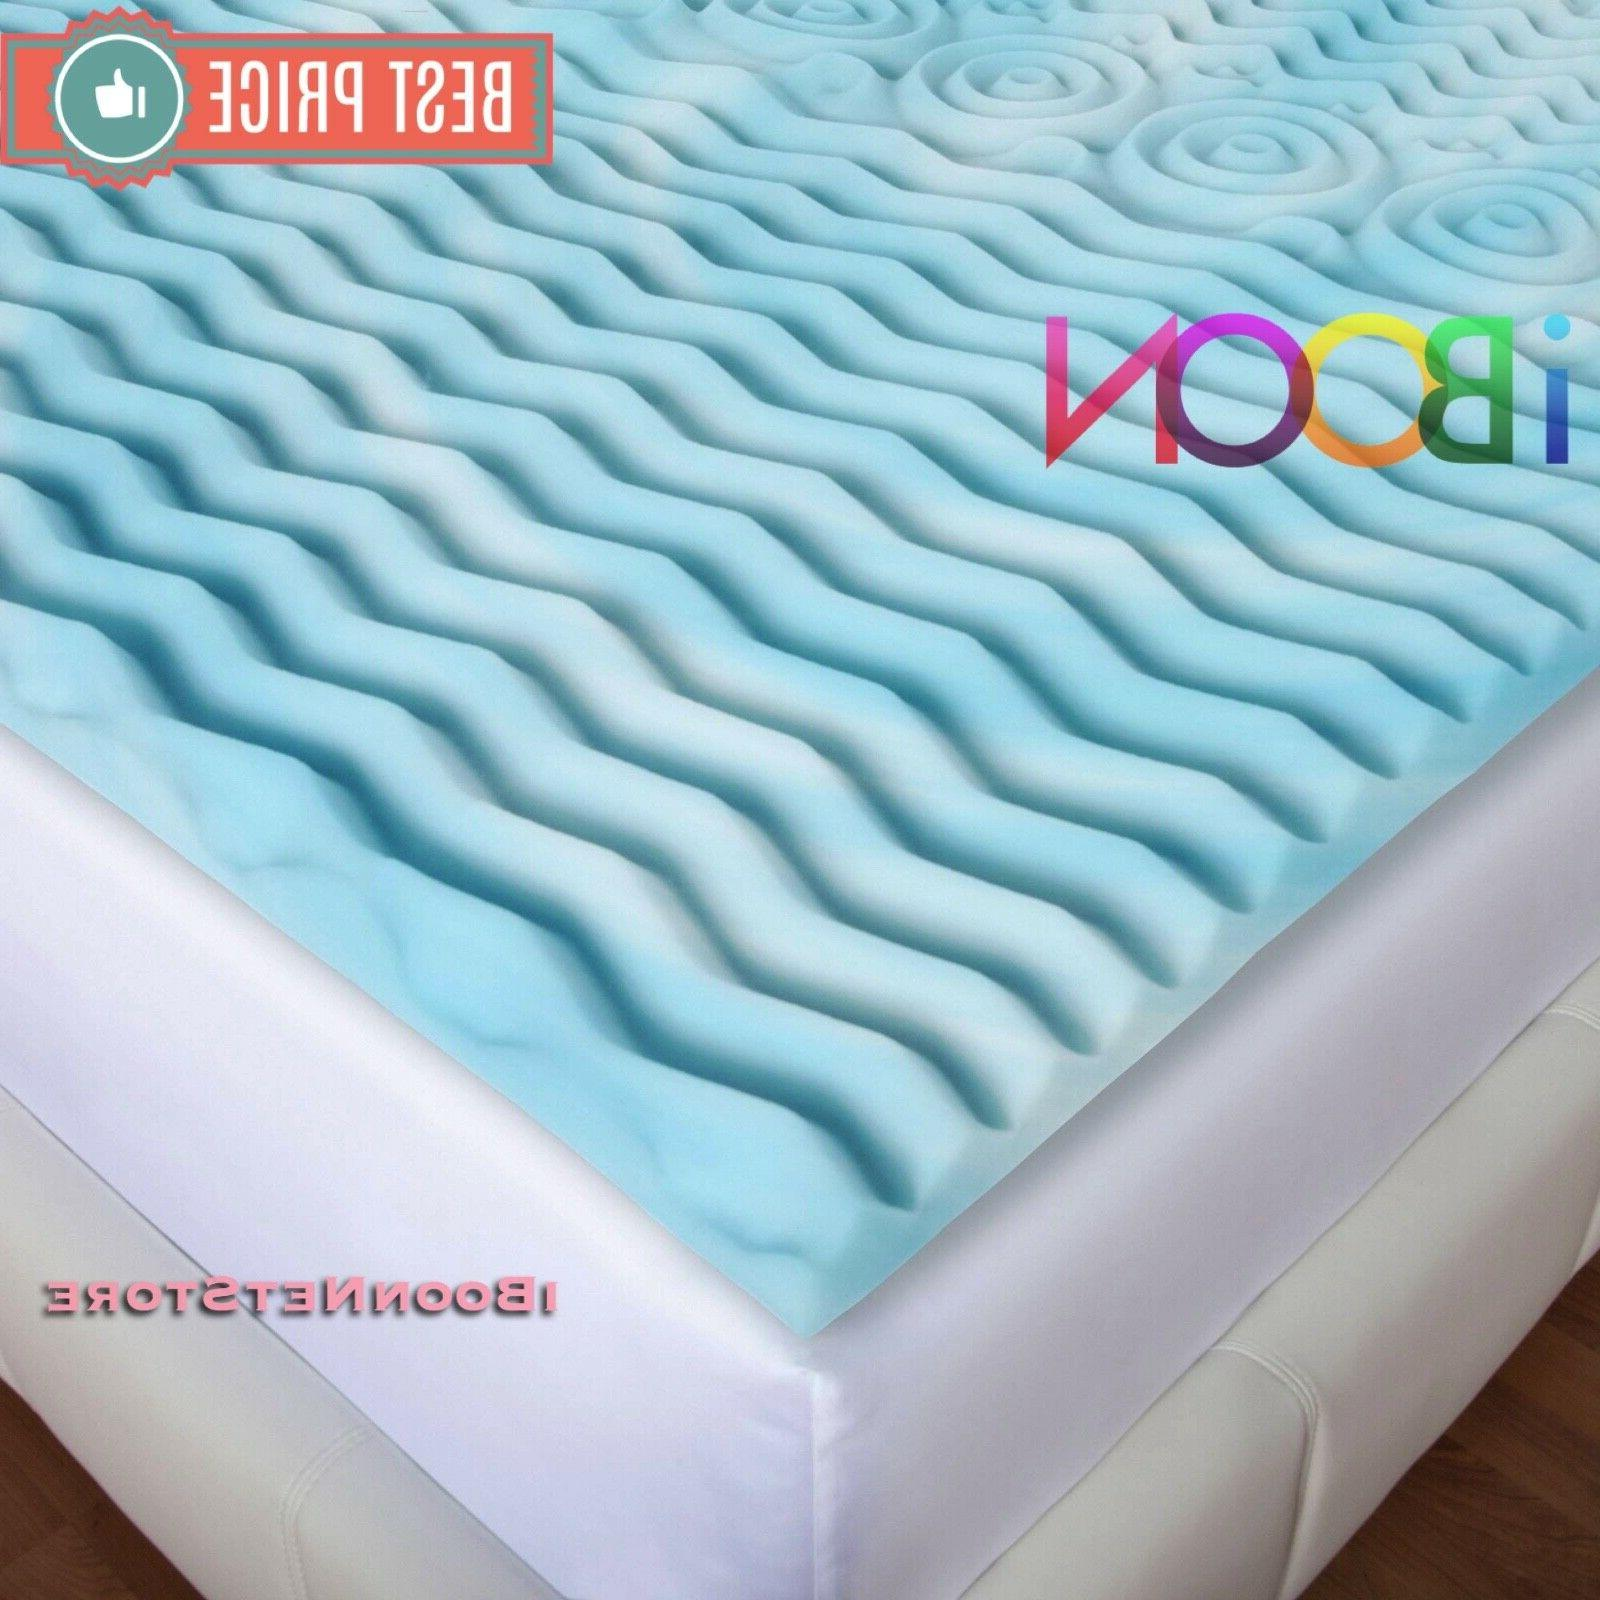 3 INCH Memory Mattress Topper Size Gel Orthopedic Pad Cover Bedding